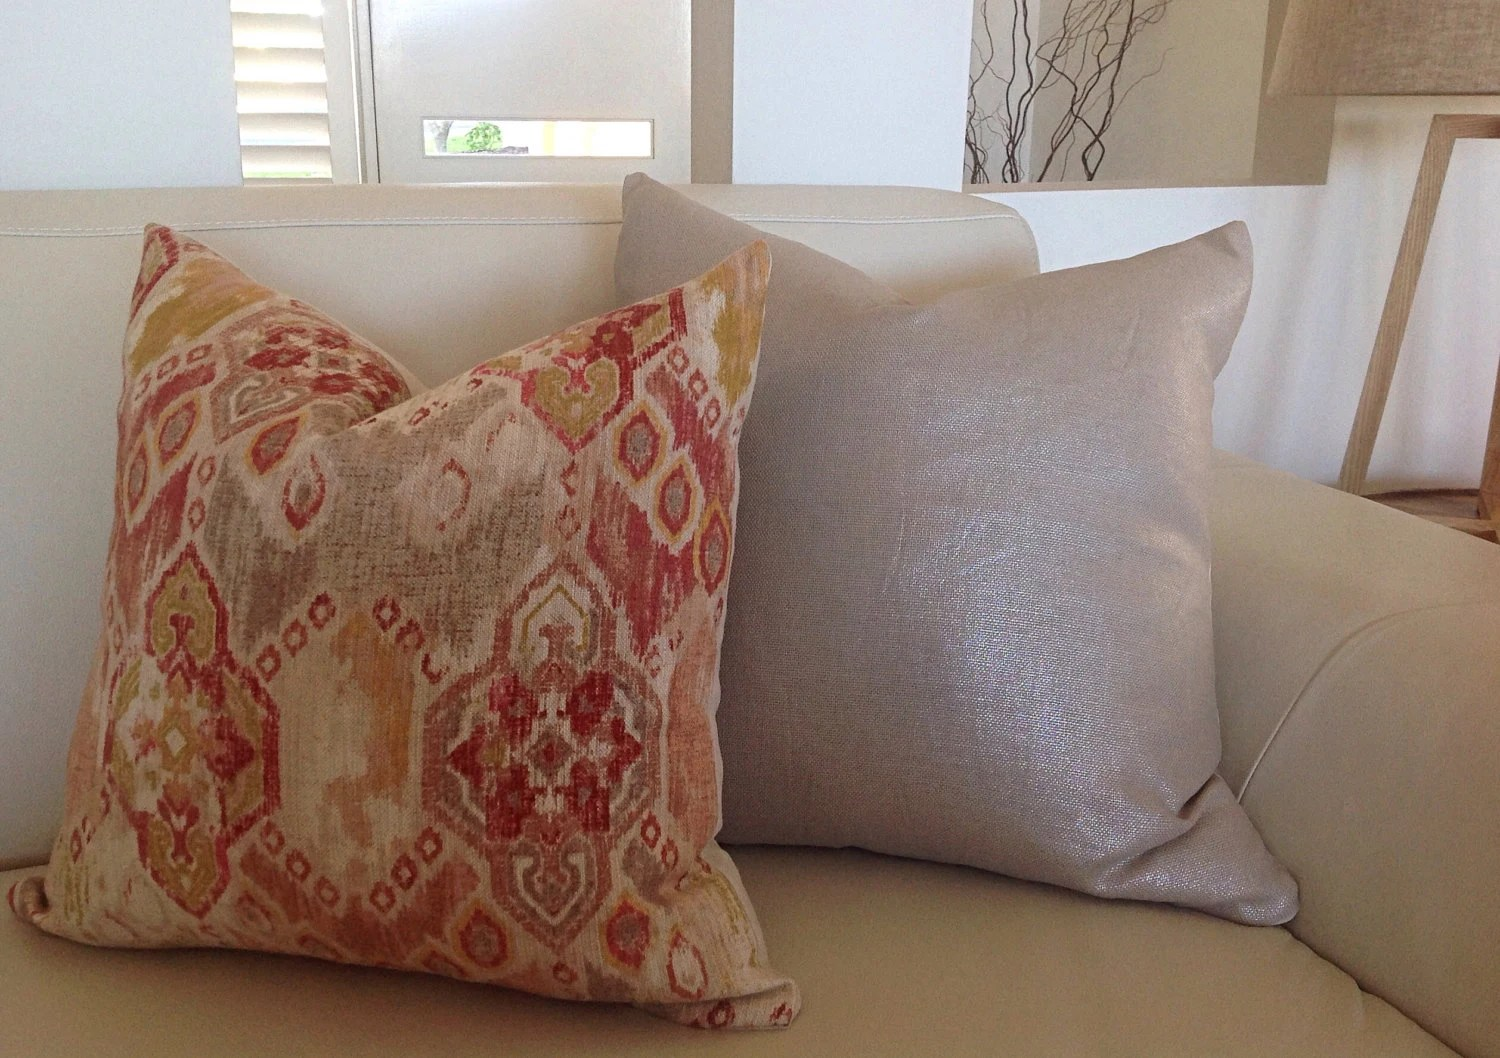 Boho Cushions Australia Earthy Red Natural Metalic Boho Cushions Boho Cushions